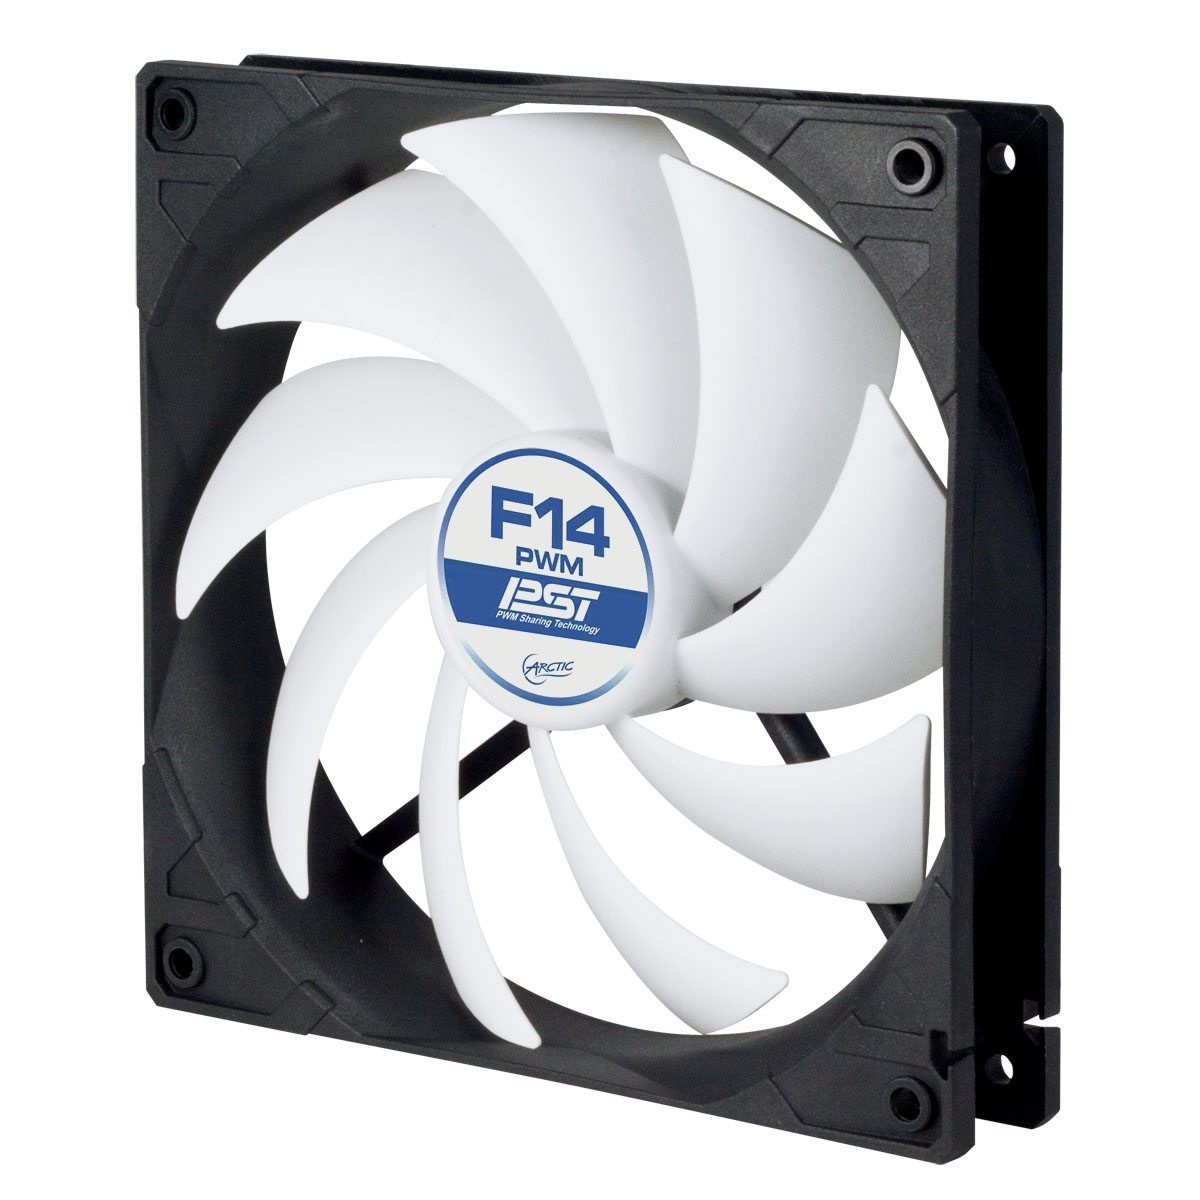 Arctic Fan F14 PWM PST - 140mm 550-1350rpm